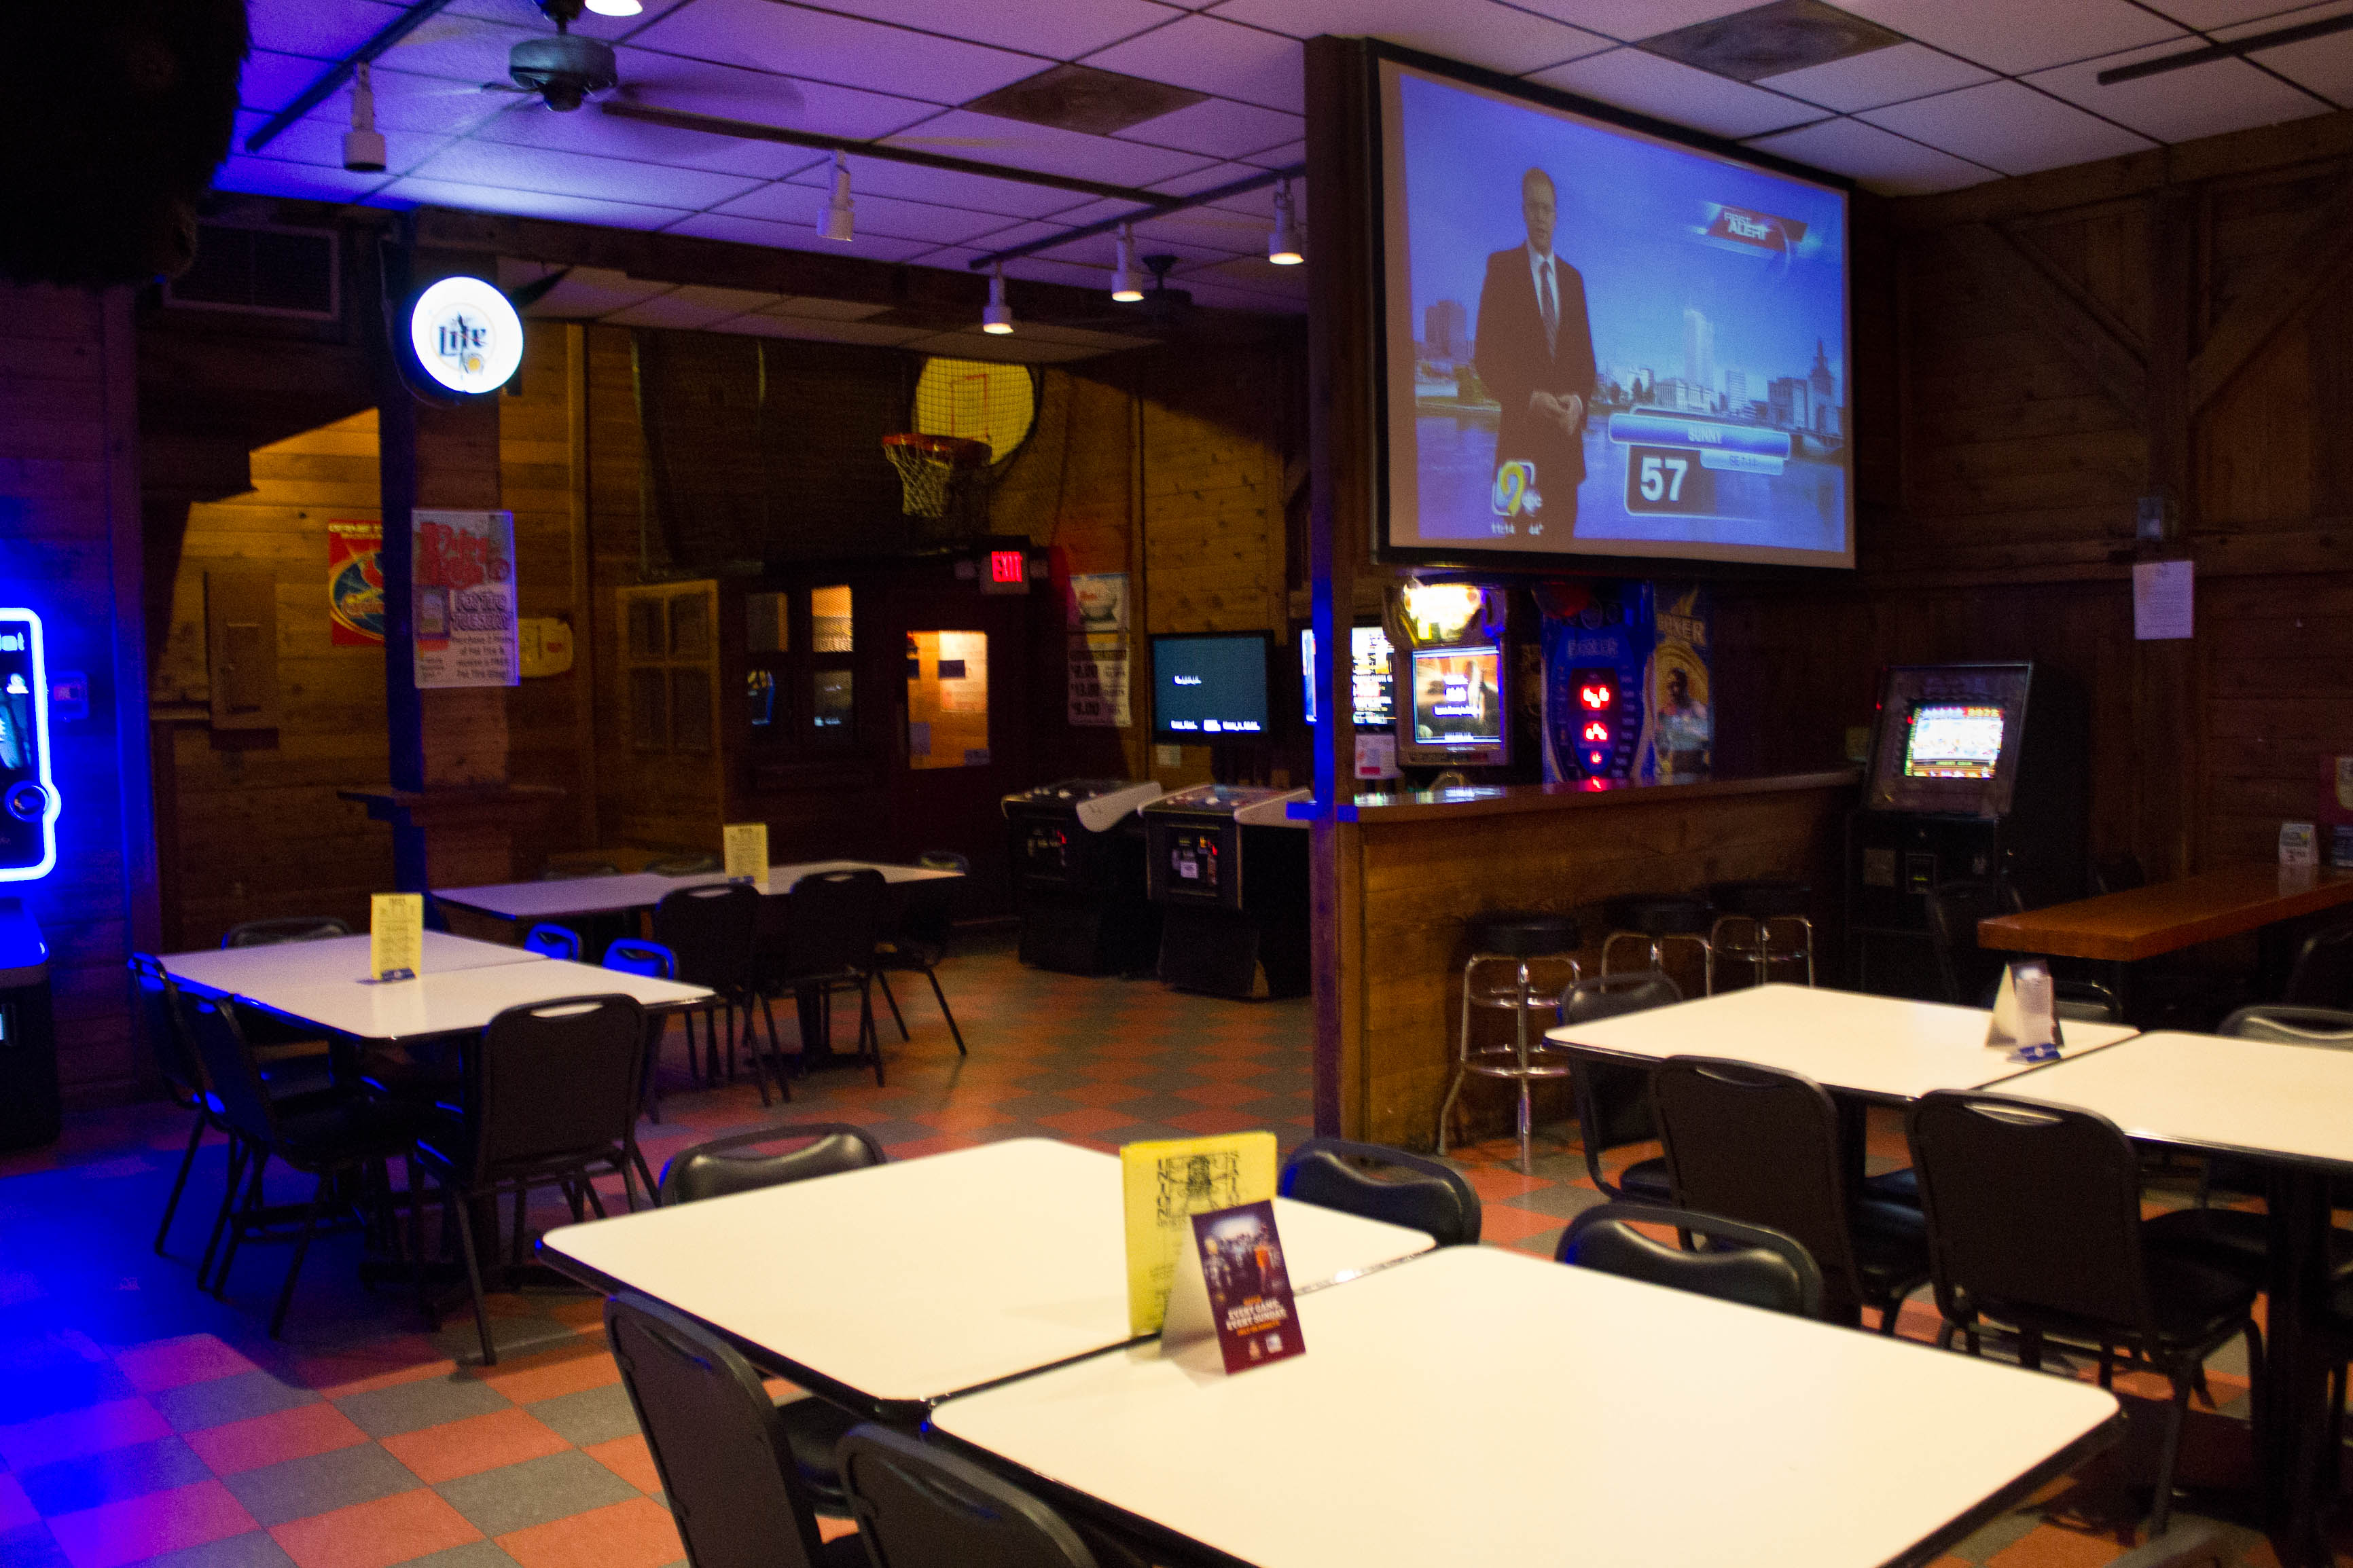 We Have Four Projection Style Big Screens And Plenty Of Pool Tables